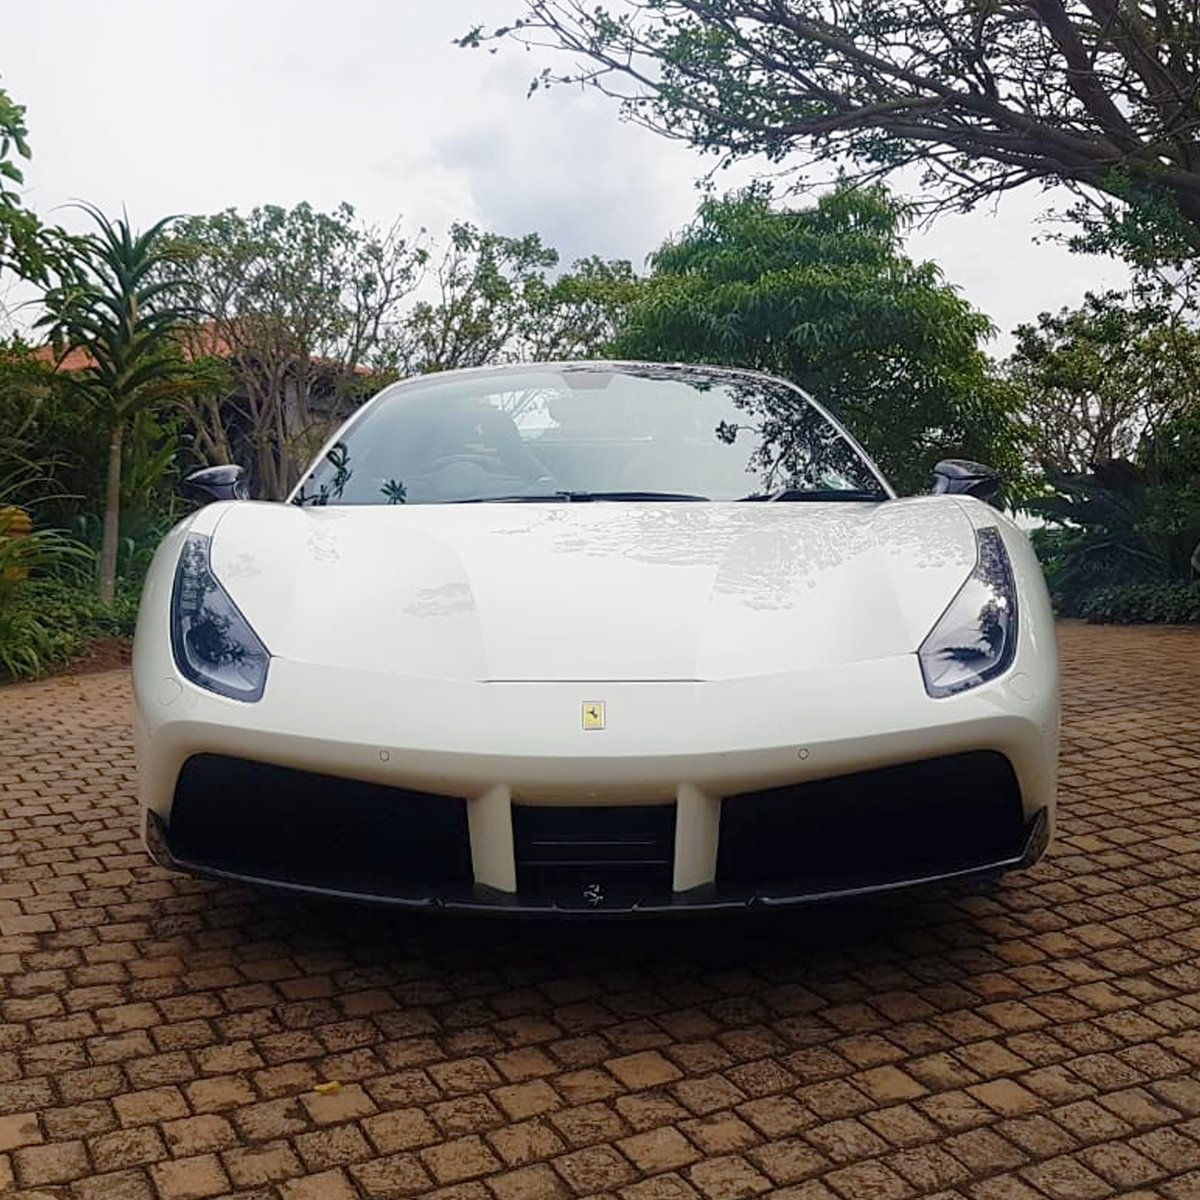 Scuderia Car Parts On Twitter Check Out These Beautiful Capristo